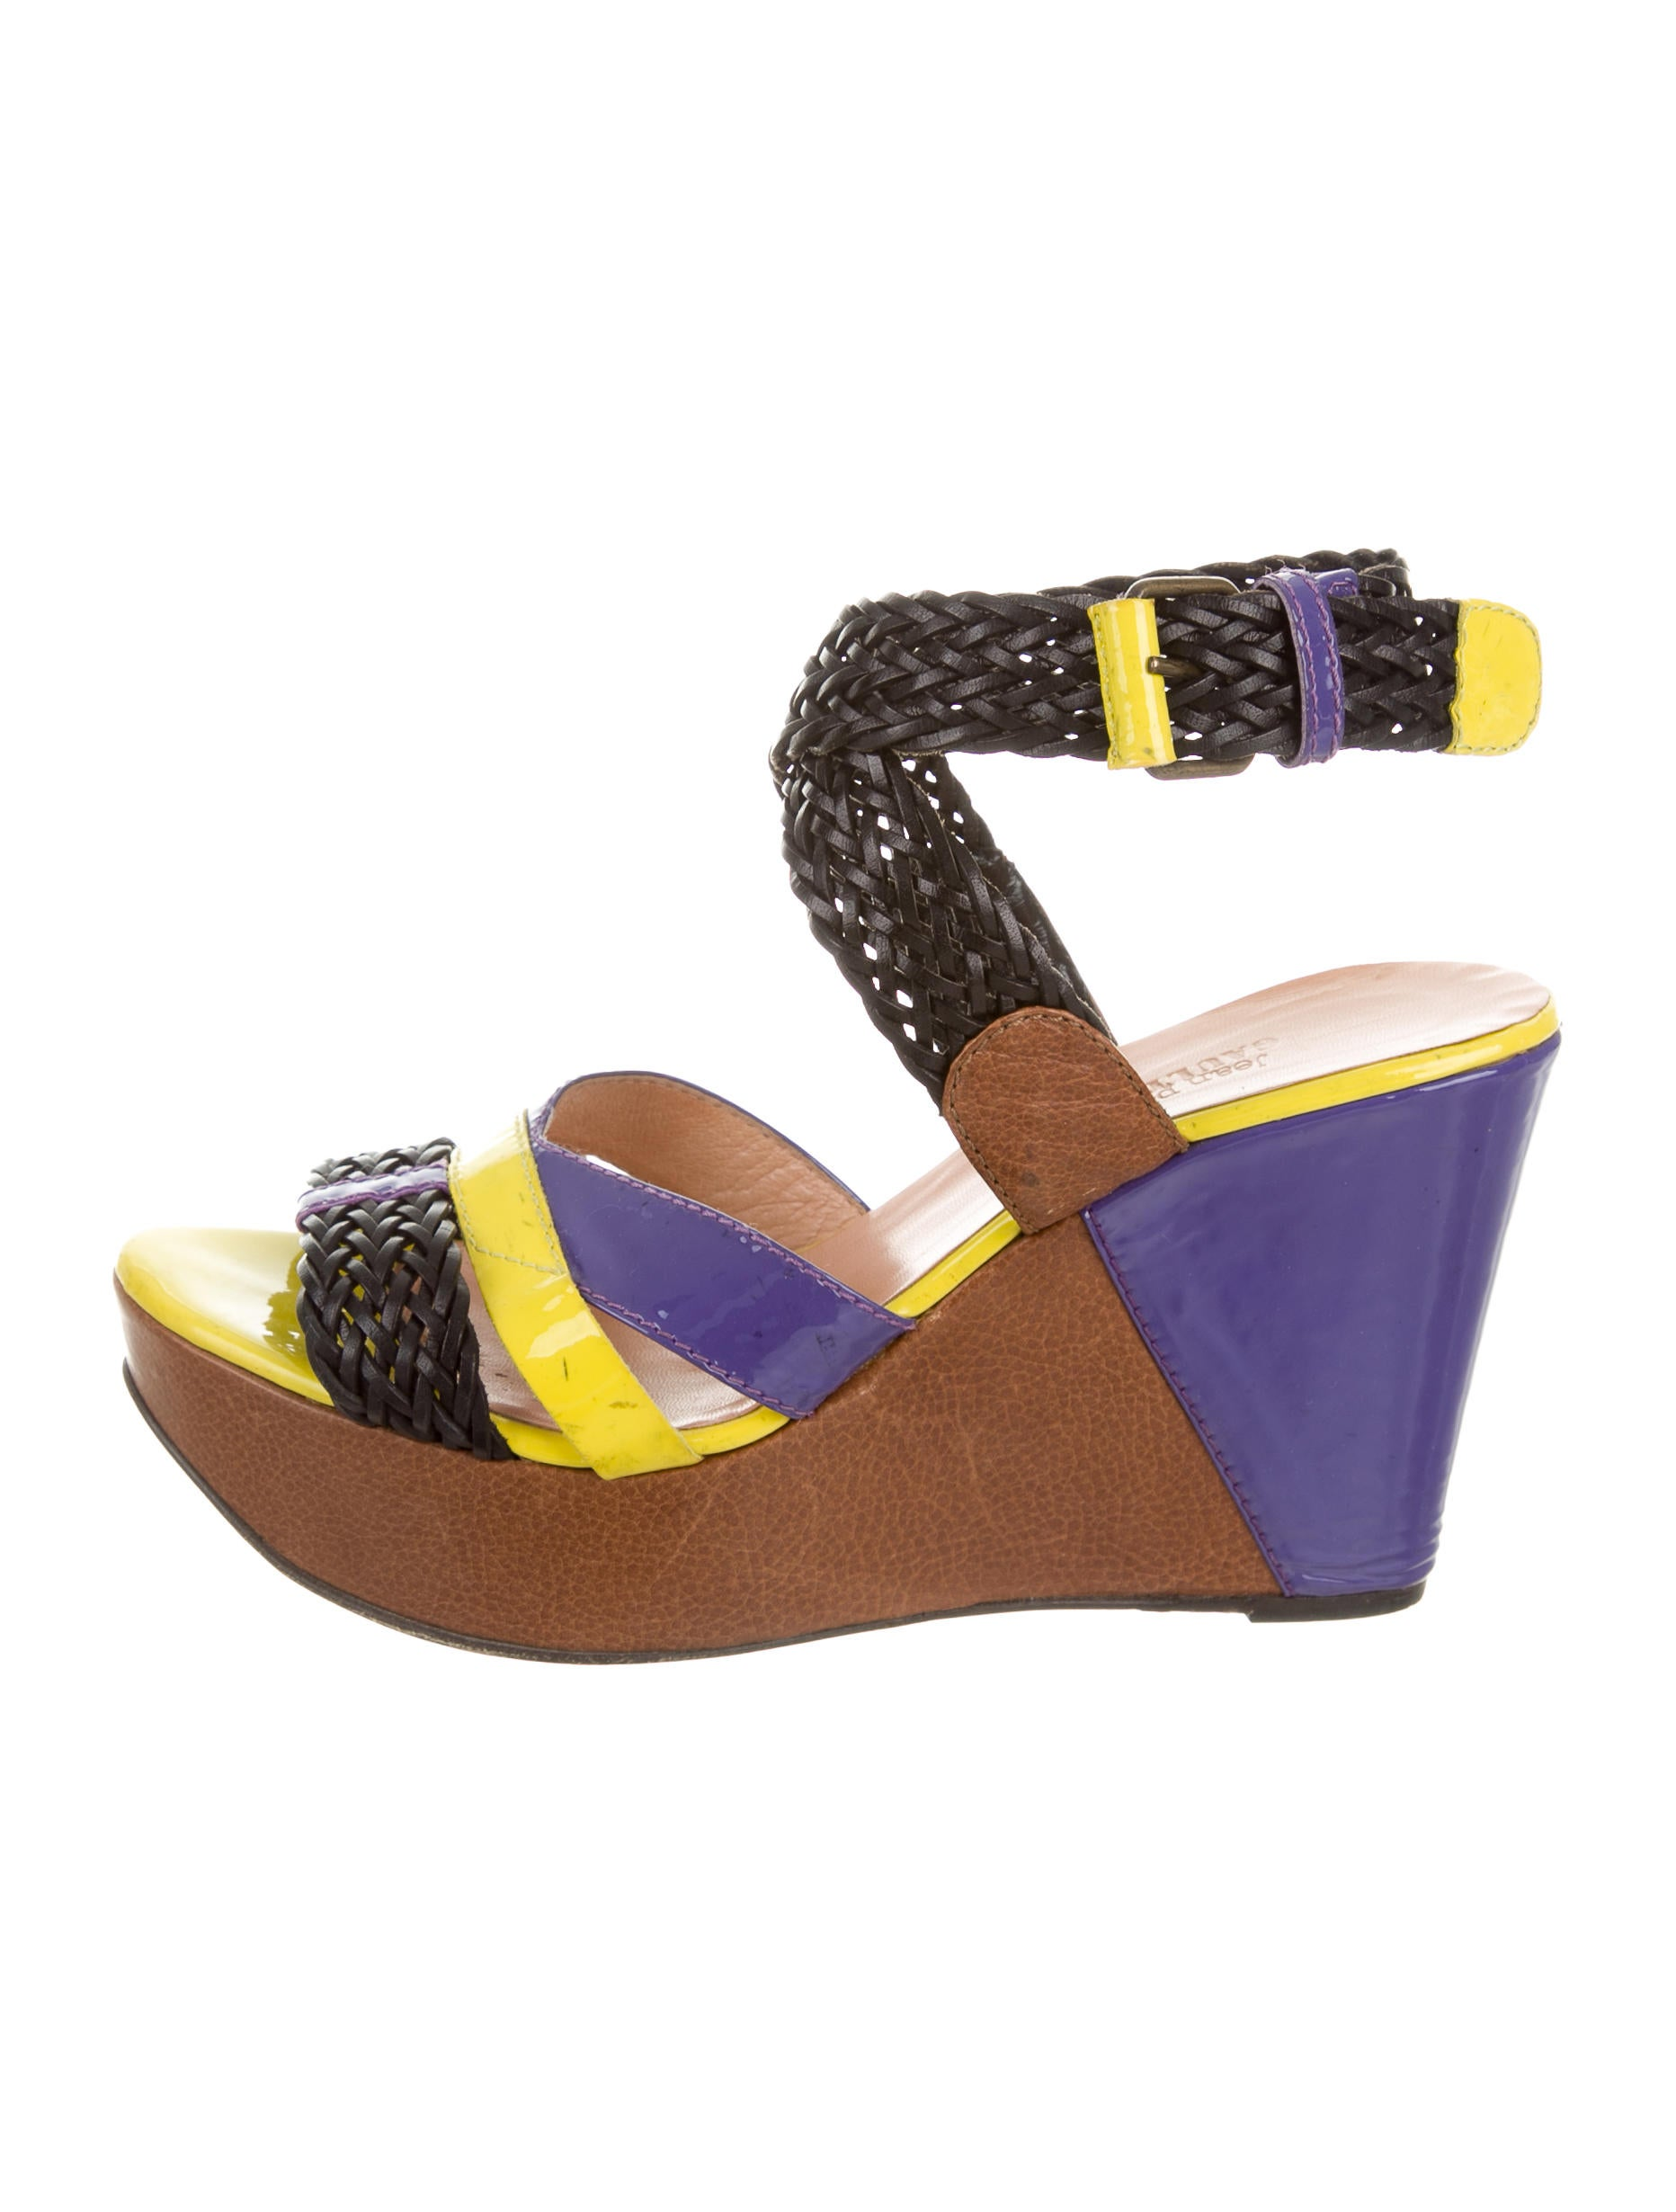 Jean Paul Gaultier Leather Wedge Sandals clearance best store to get 5KiUCpGsbG